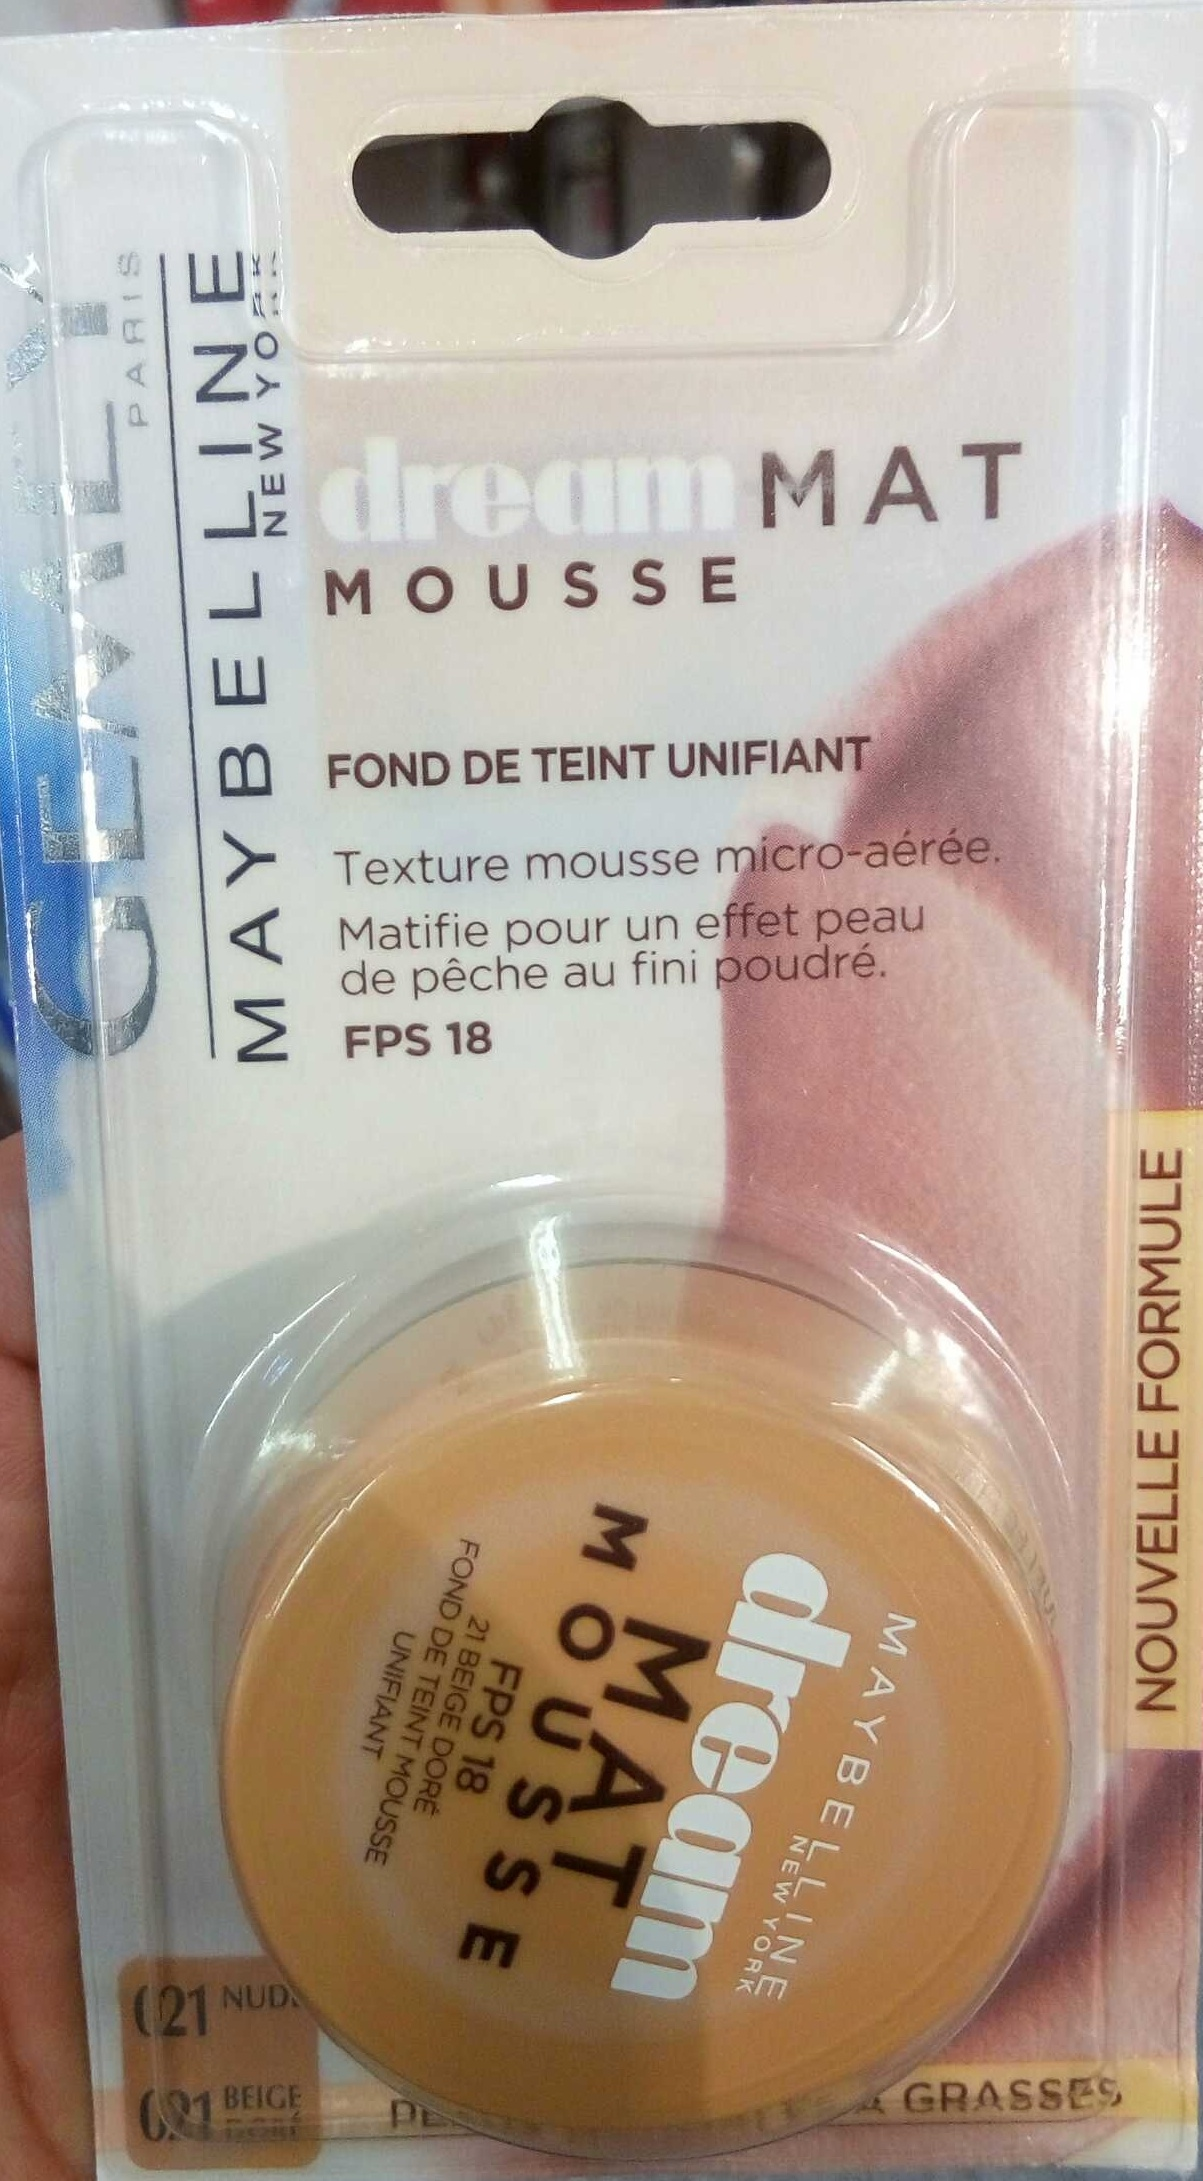 Dream Mat Mousse - Product